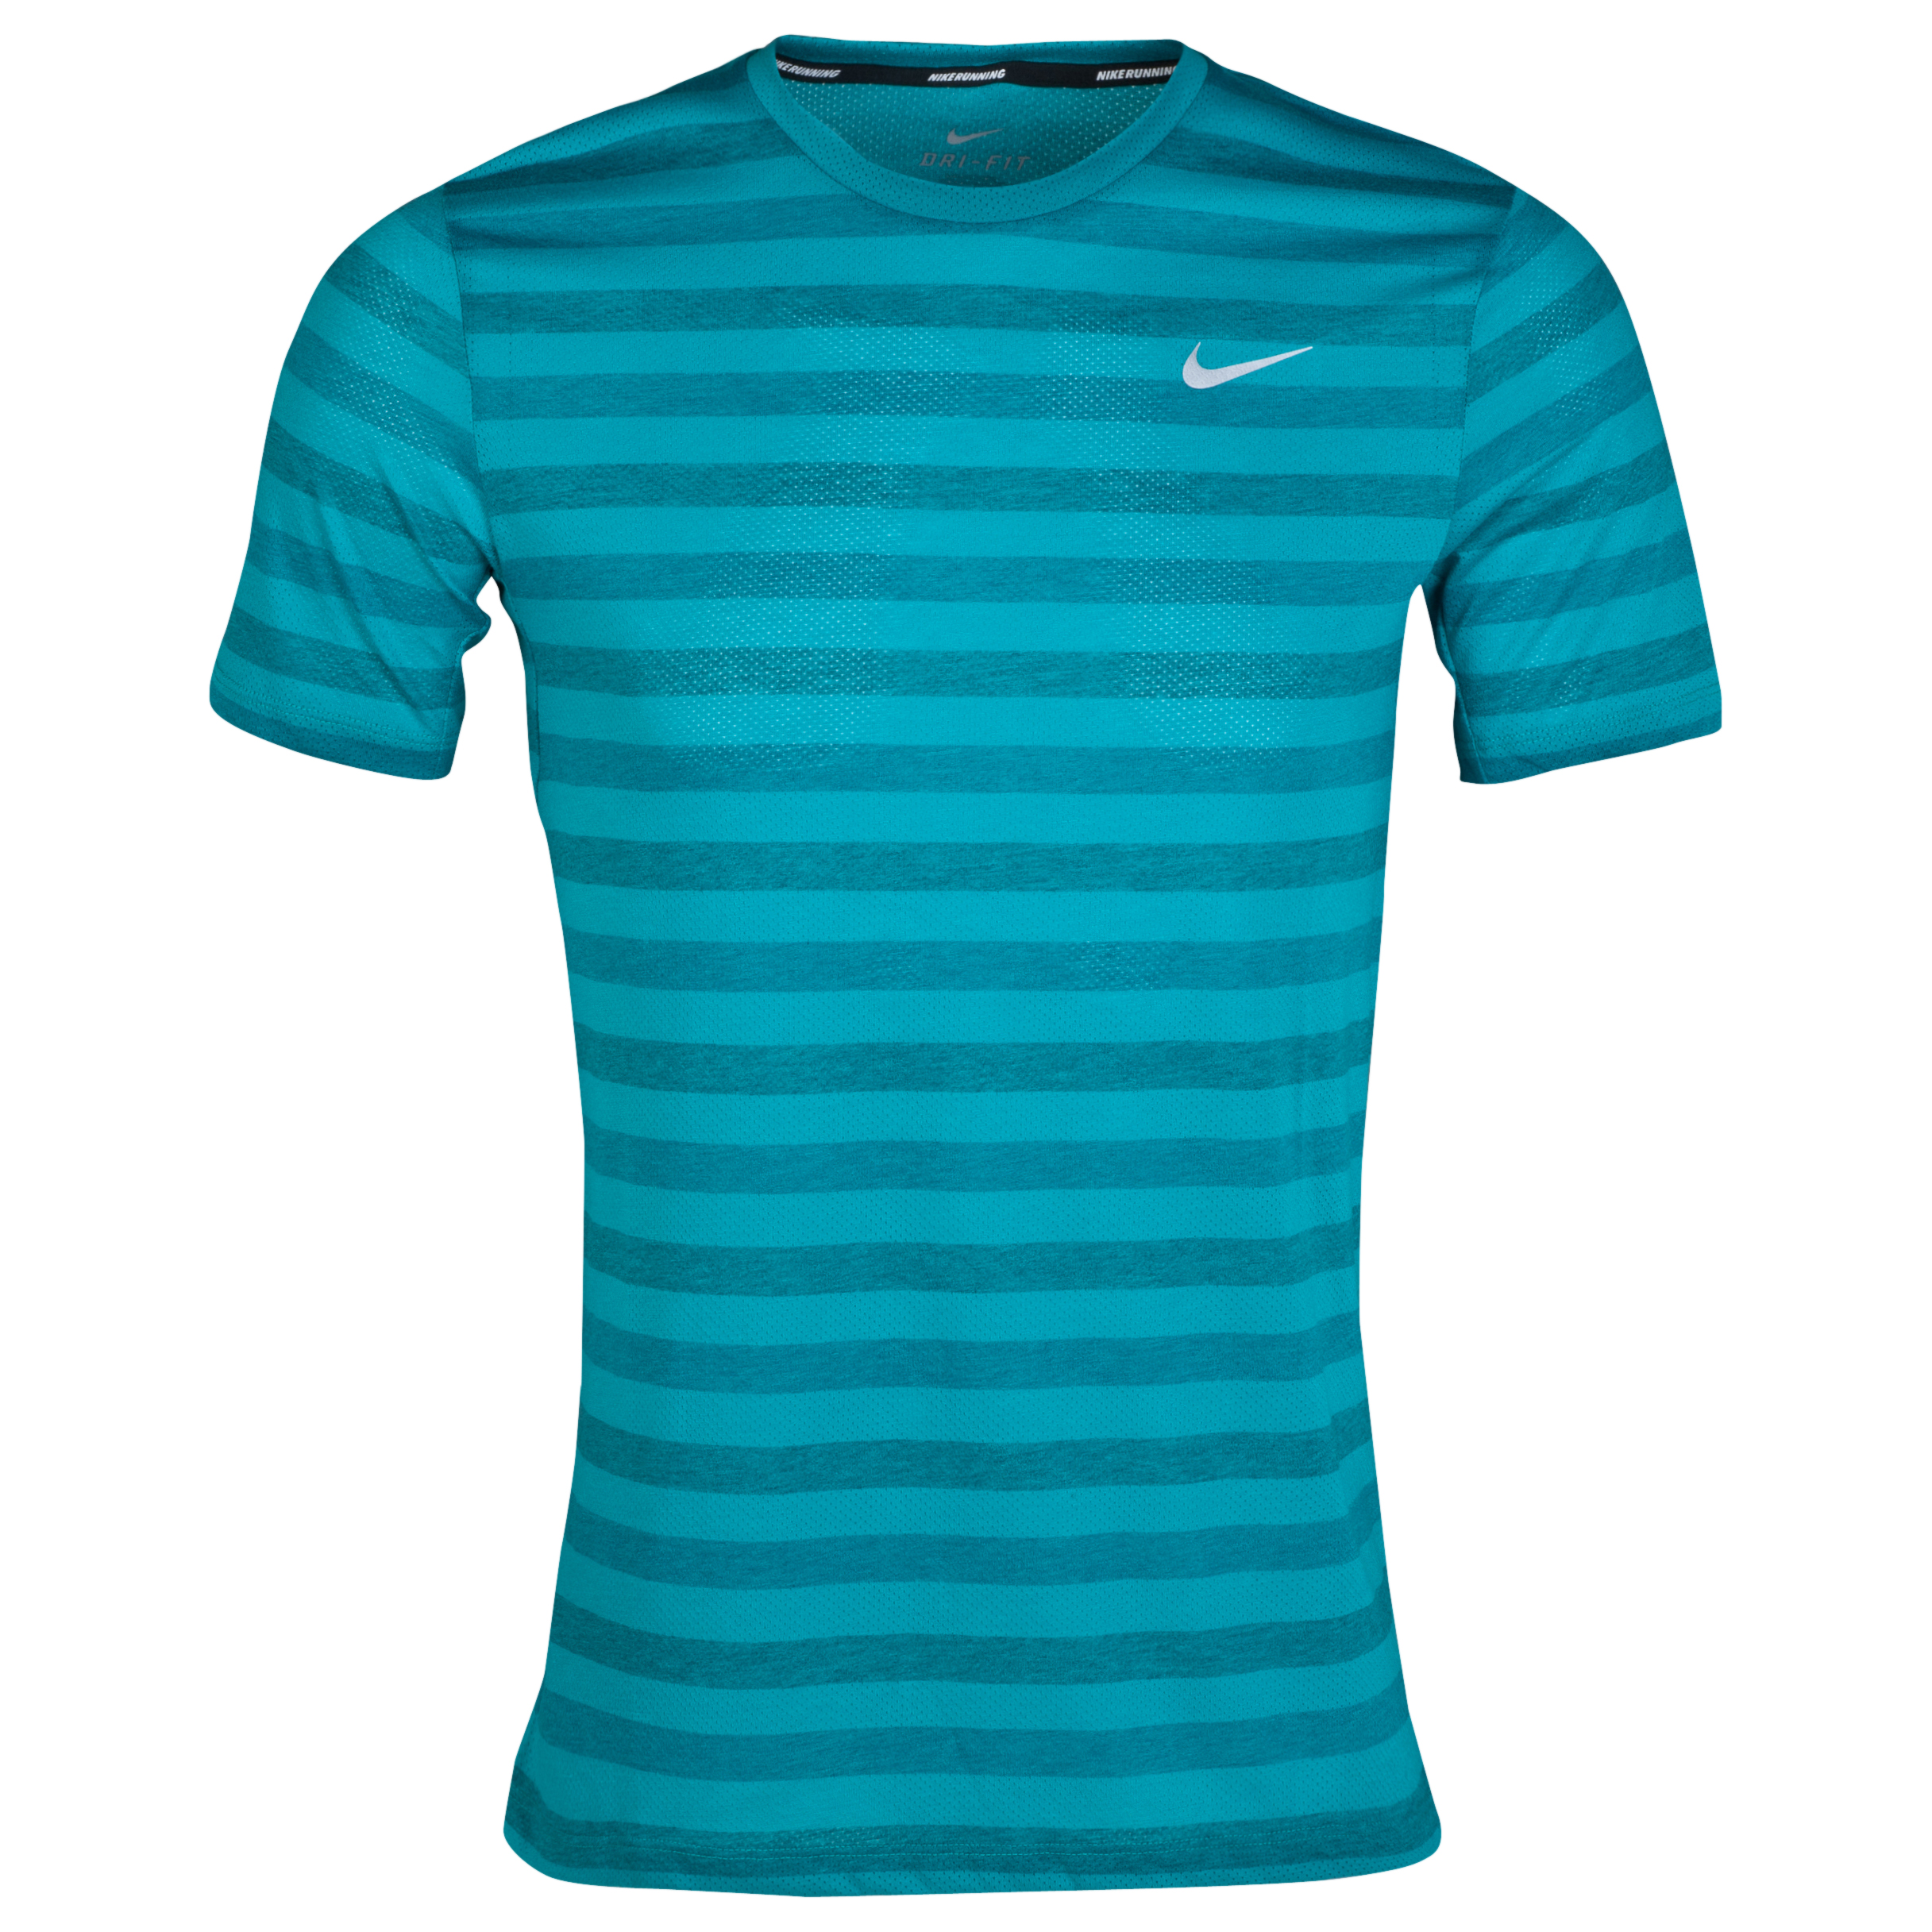 Nike Nike DriFit Touch Tailwind Striped T-Shirt Green